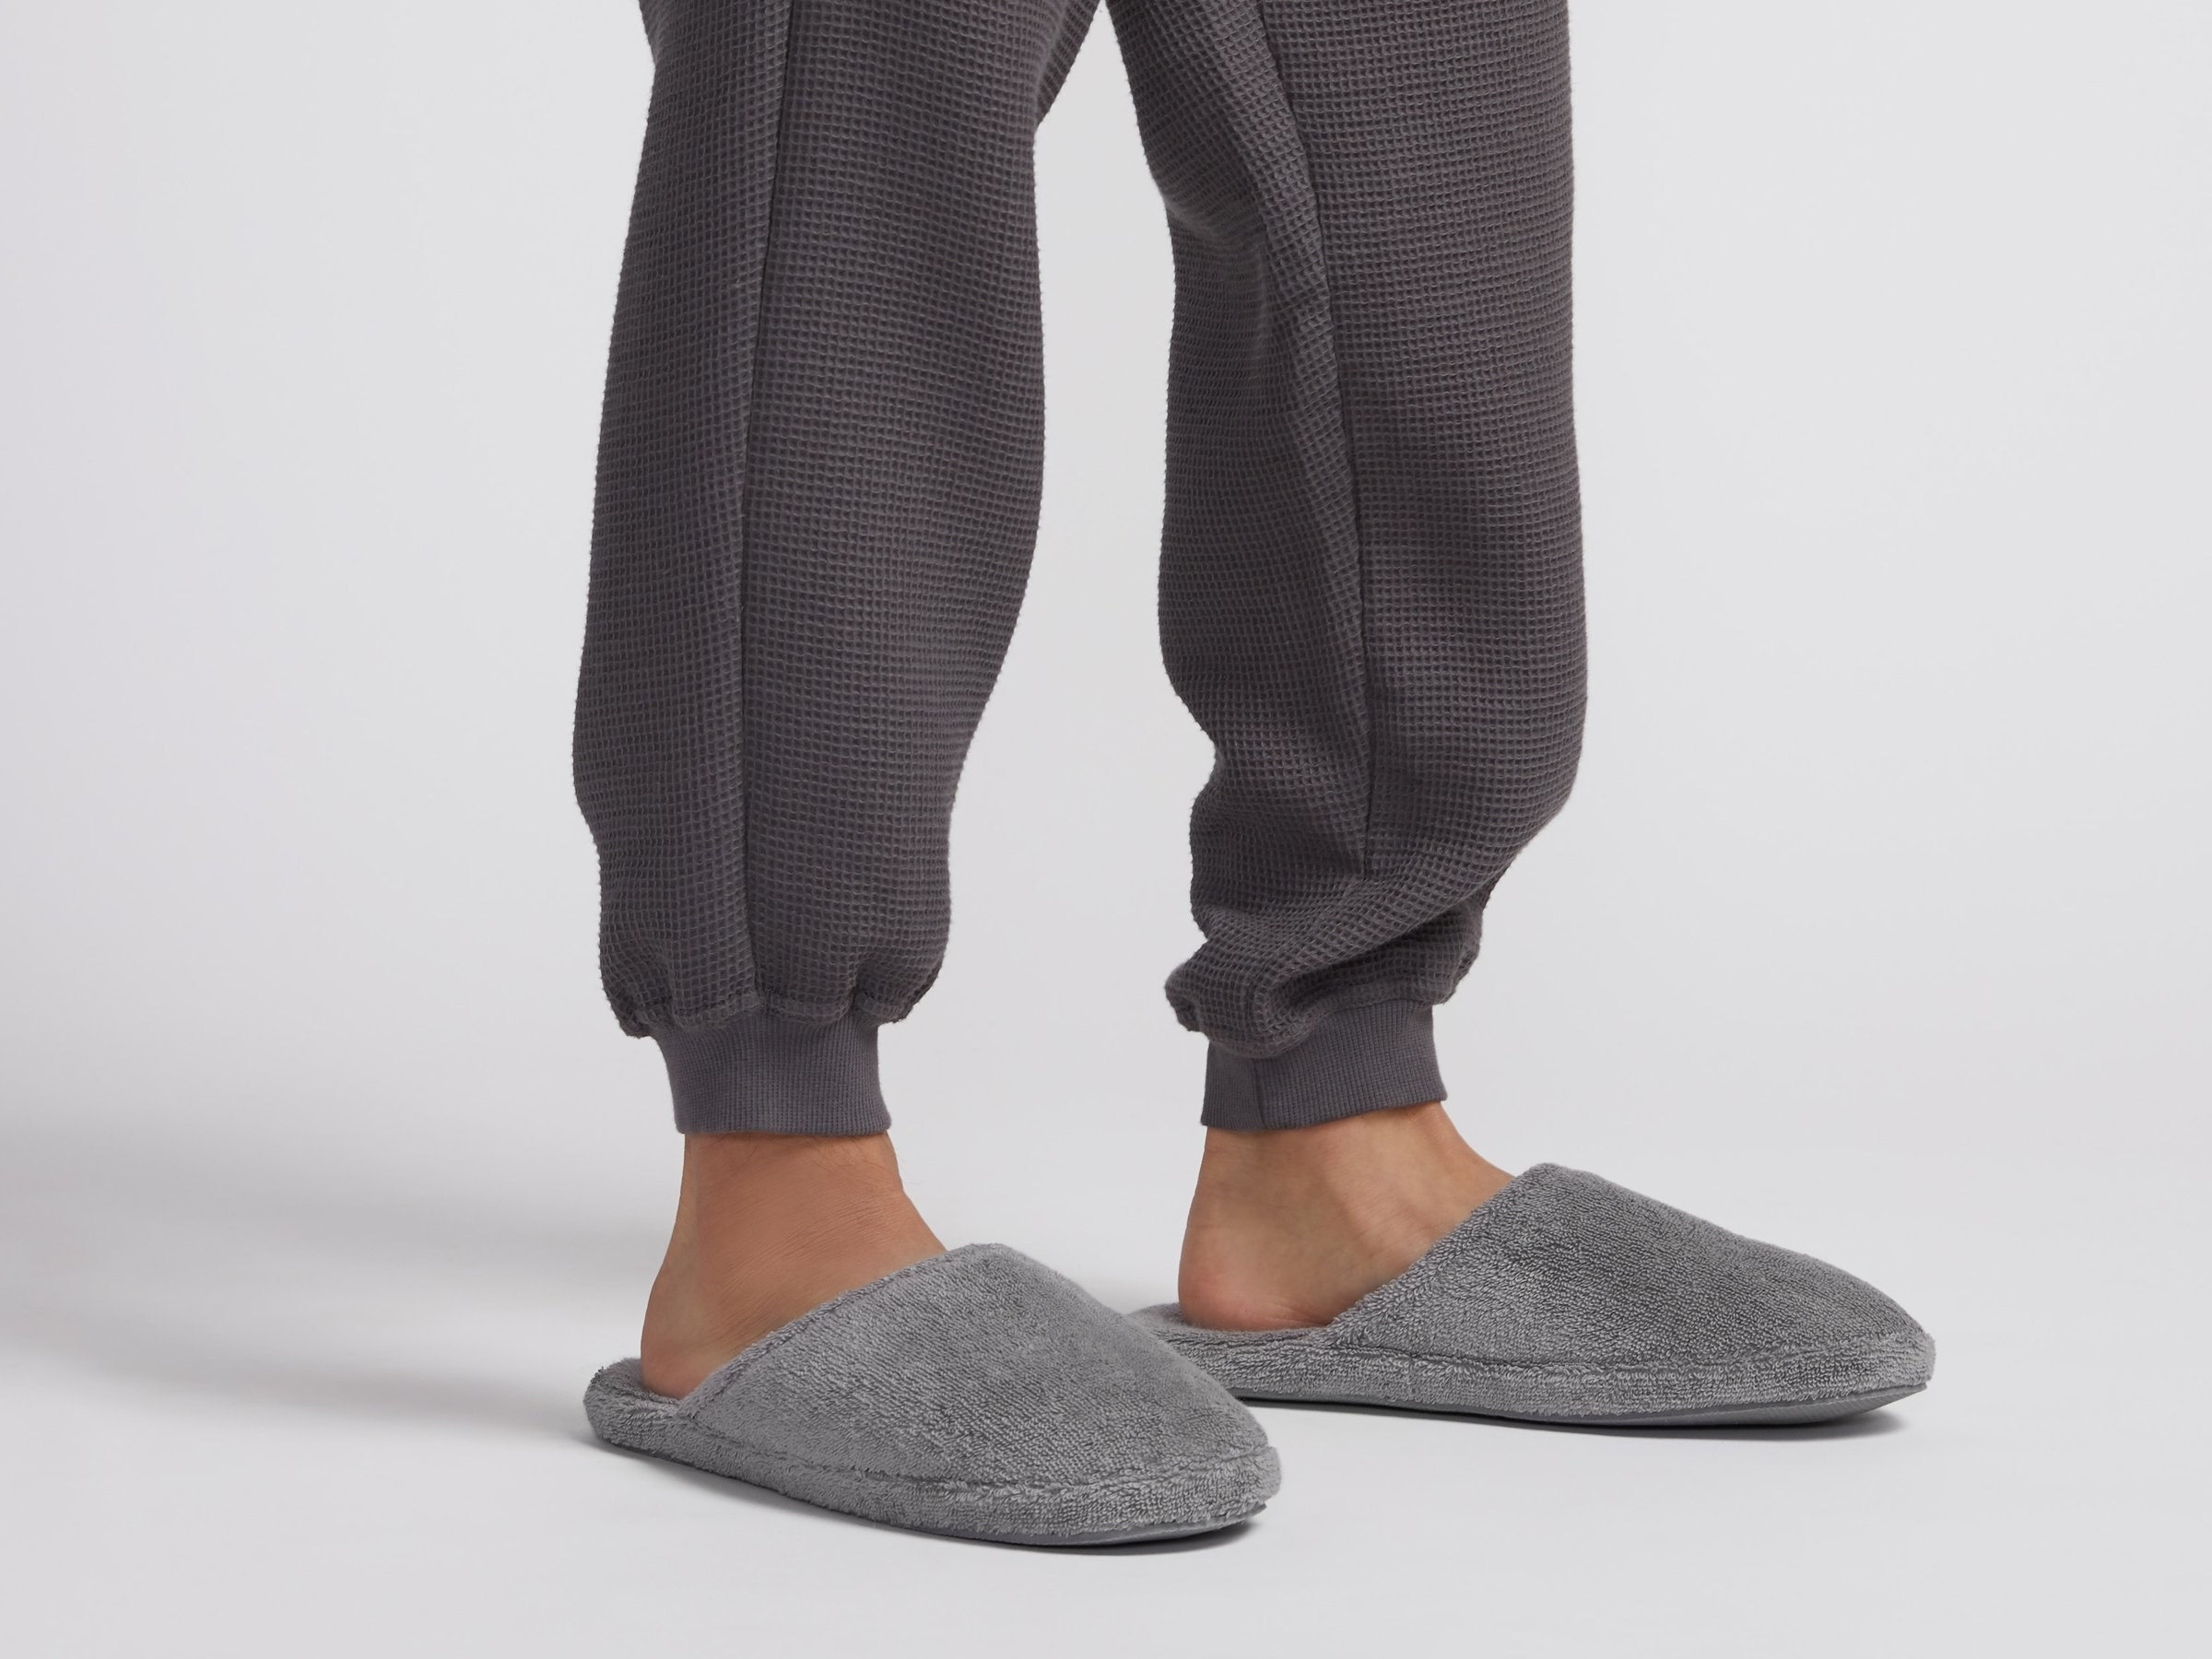 A model wearing joggers and gray closed-toed slippers